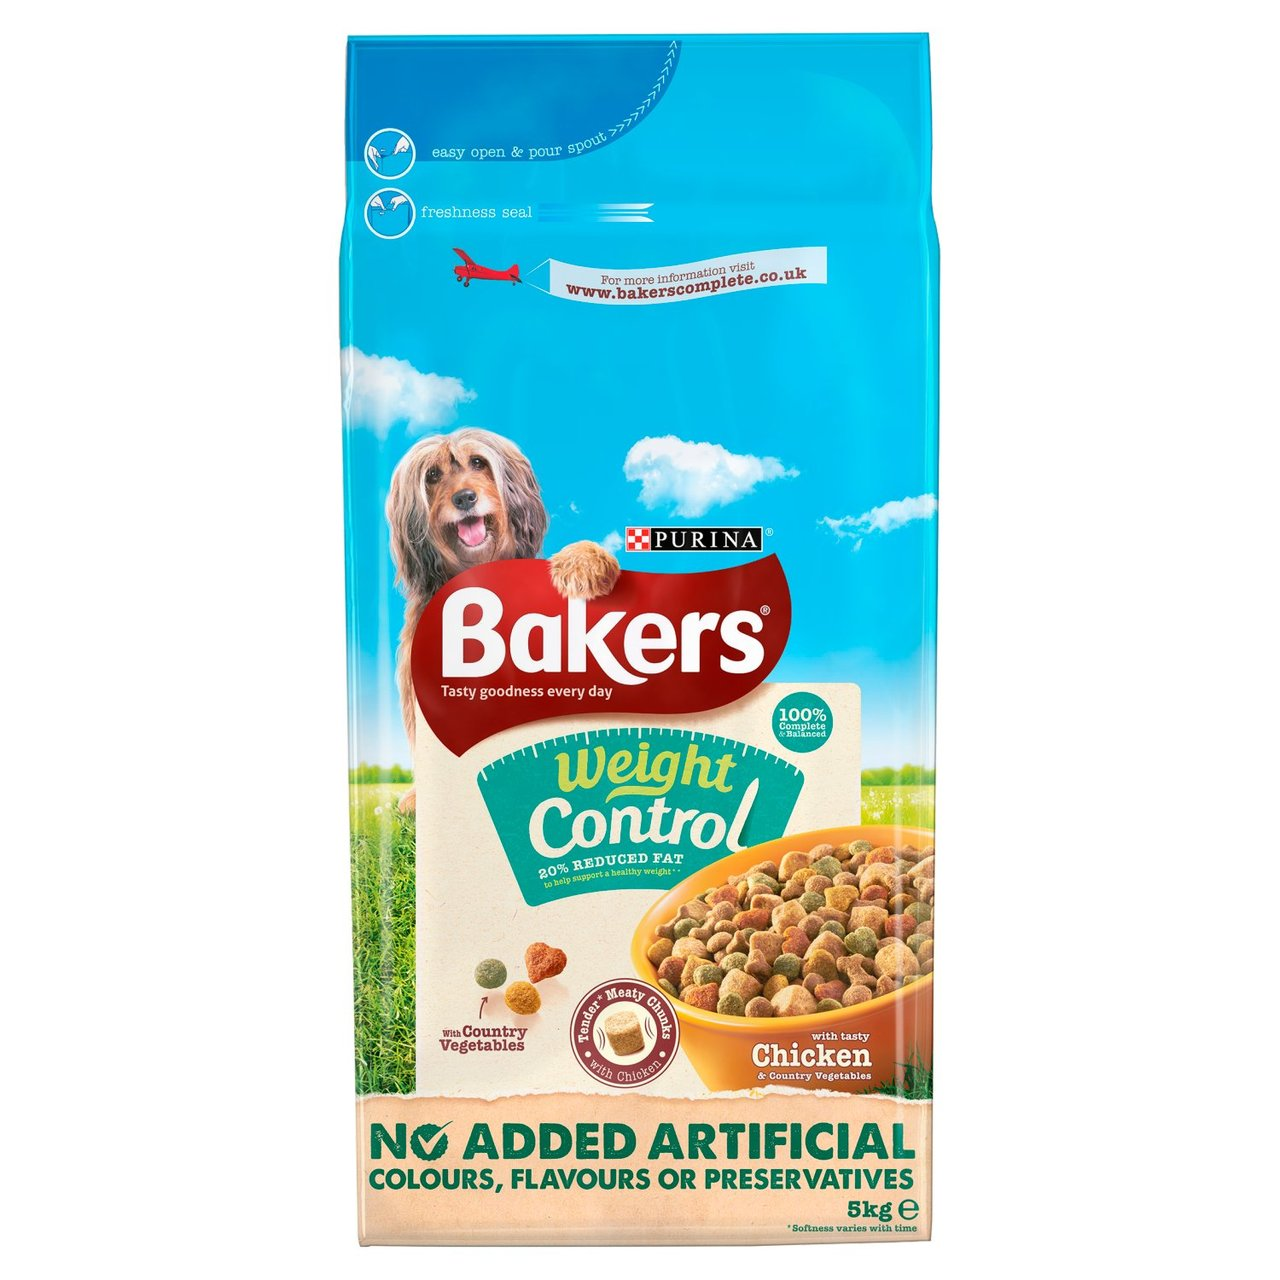 An image of Bakers Weight Control Chicken & Veg Dry Food